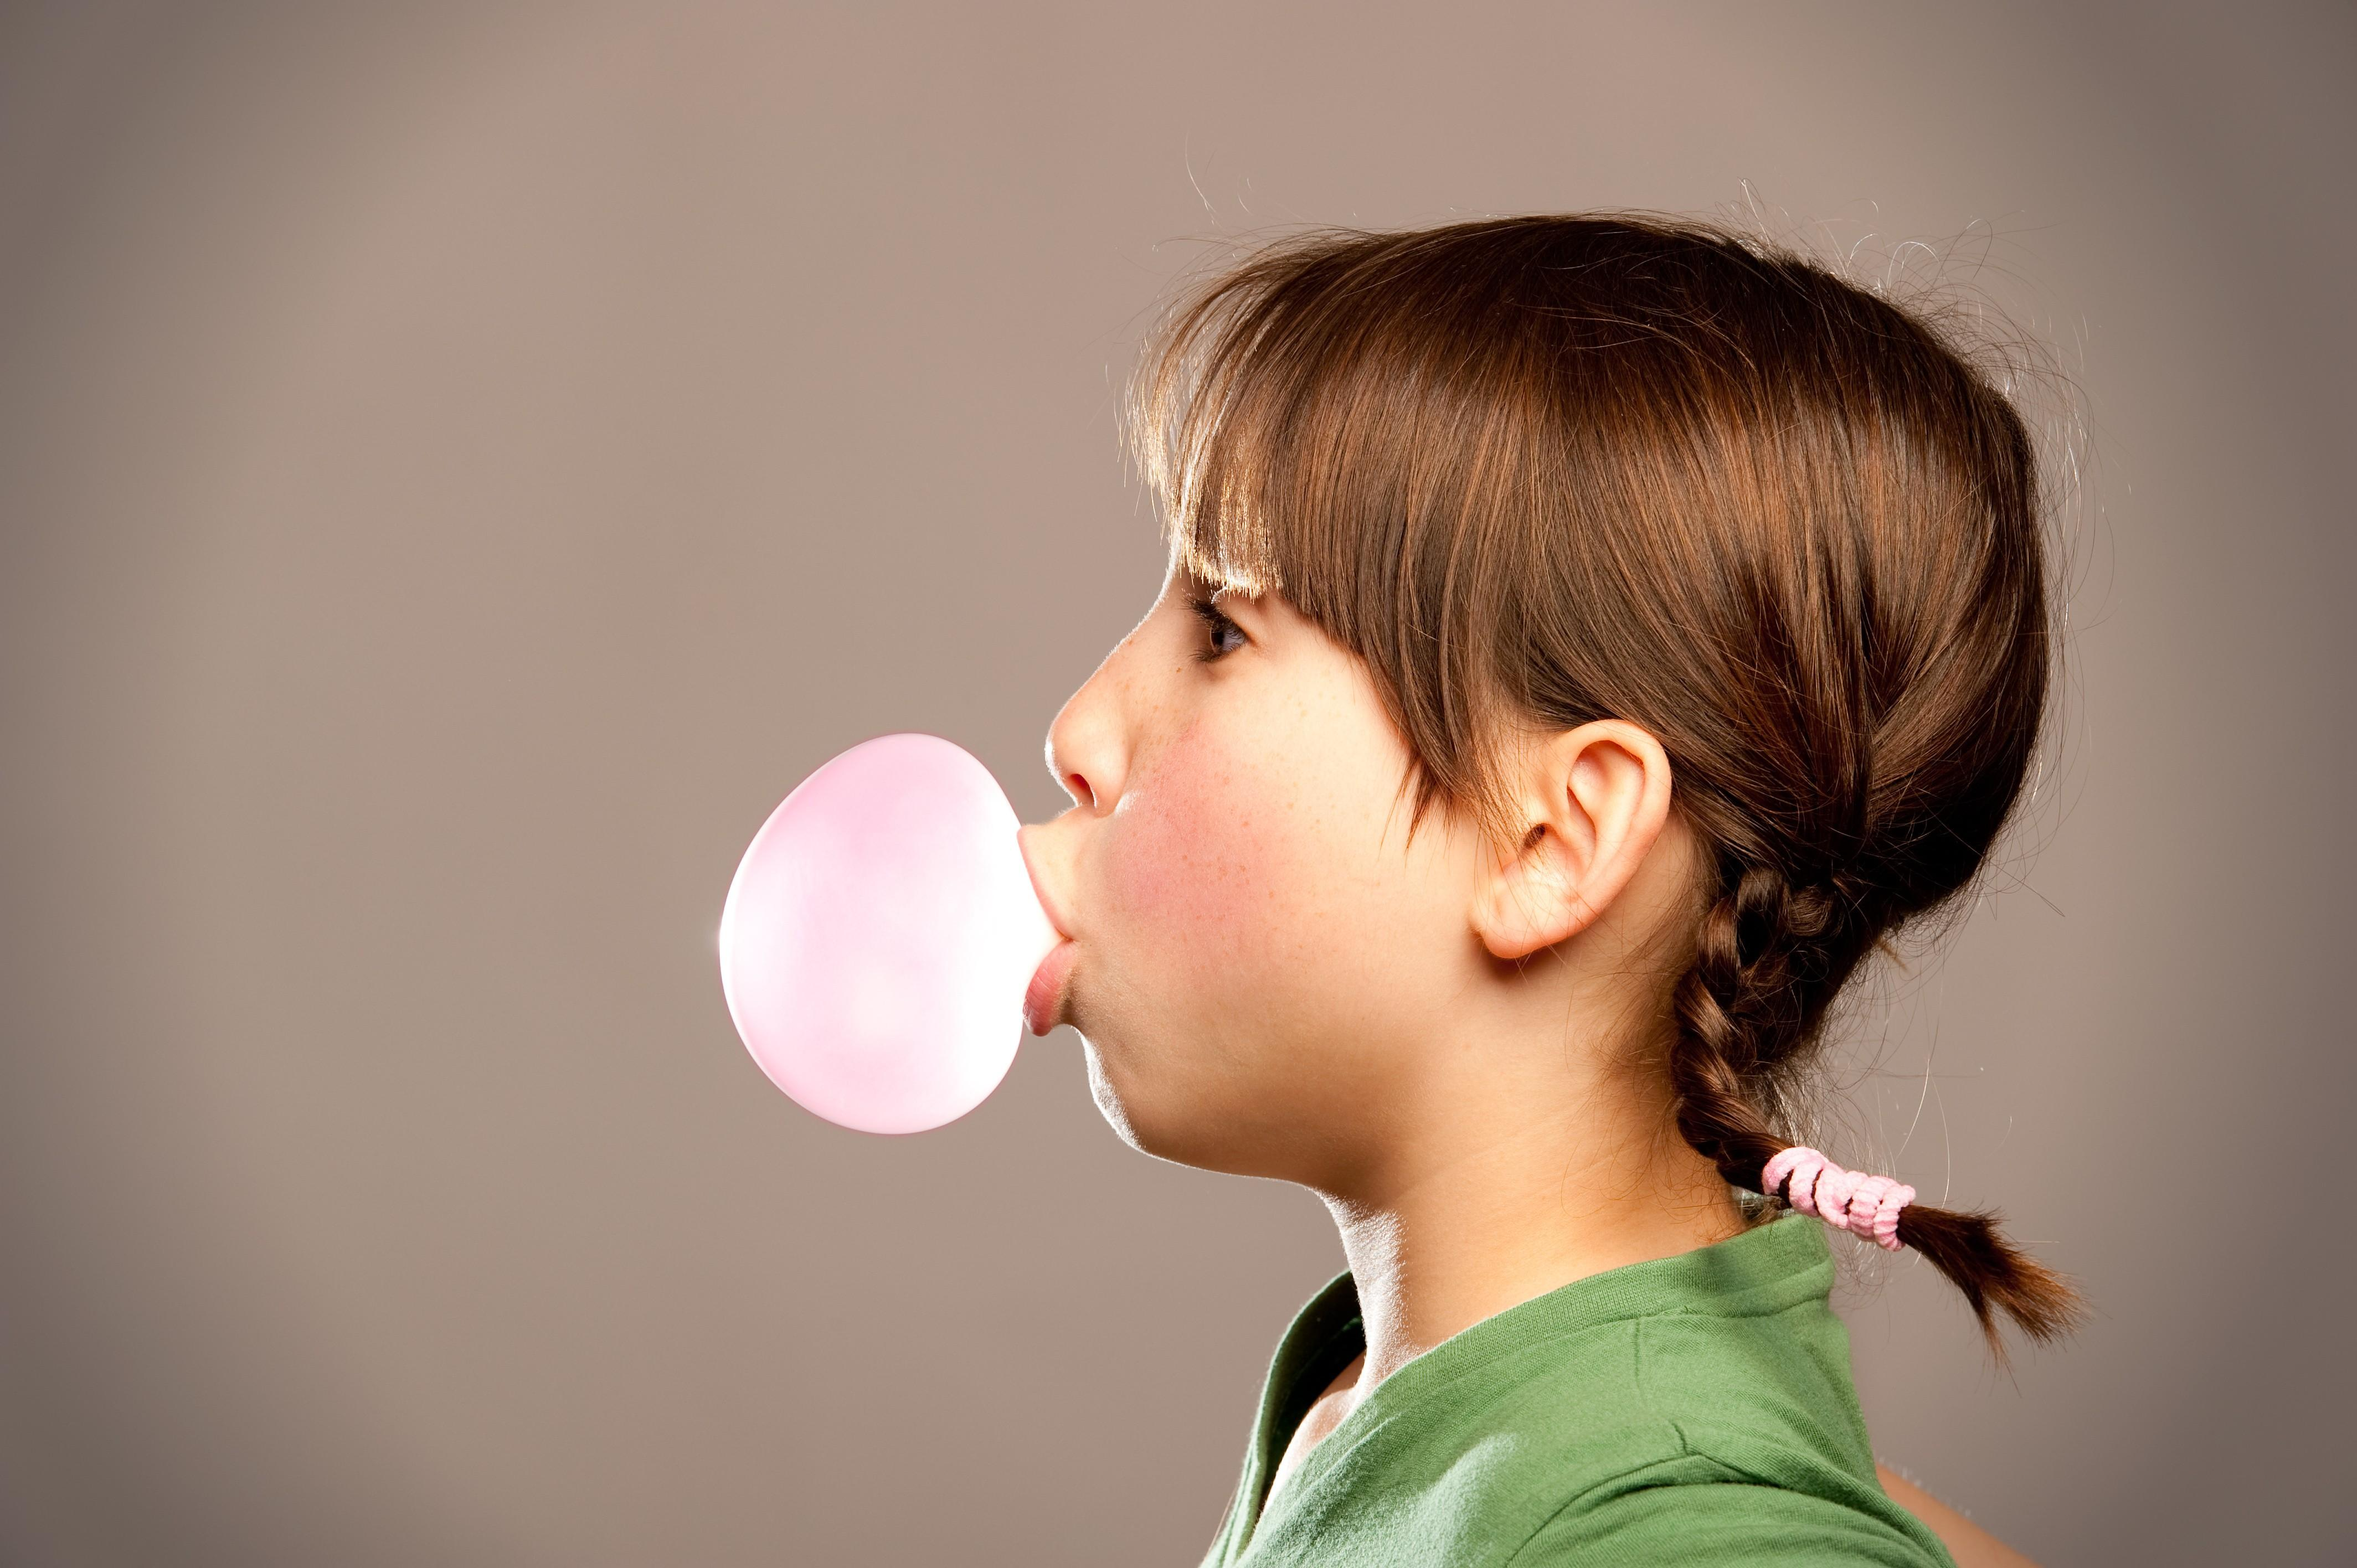 bubble with chewing gum iamge